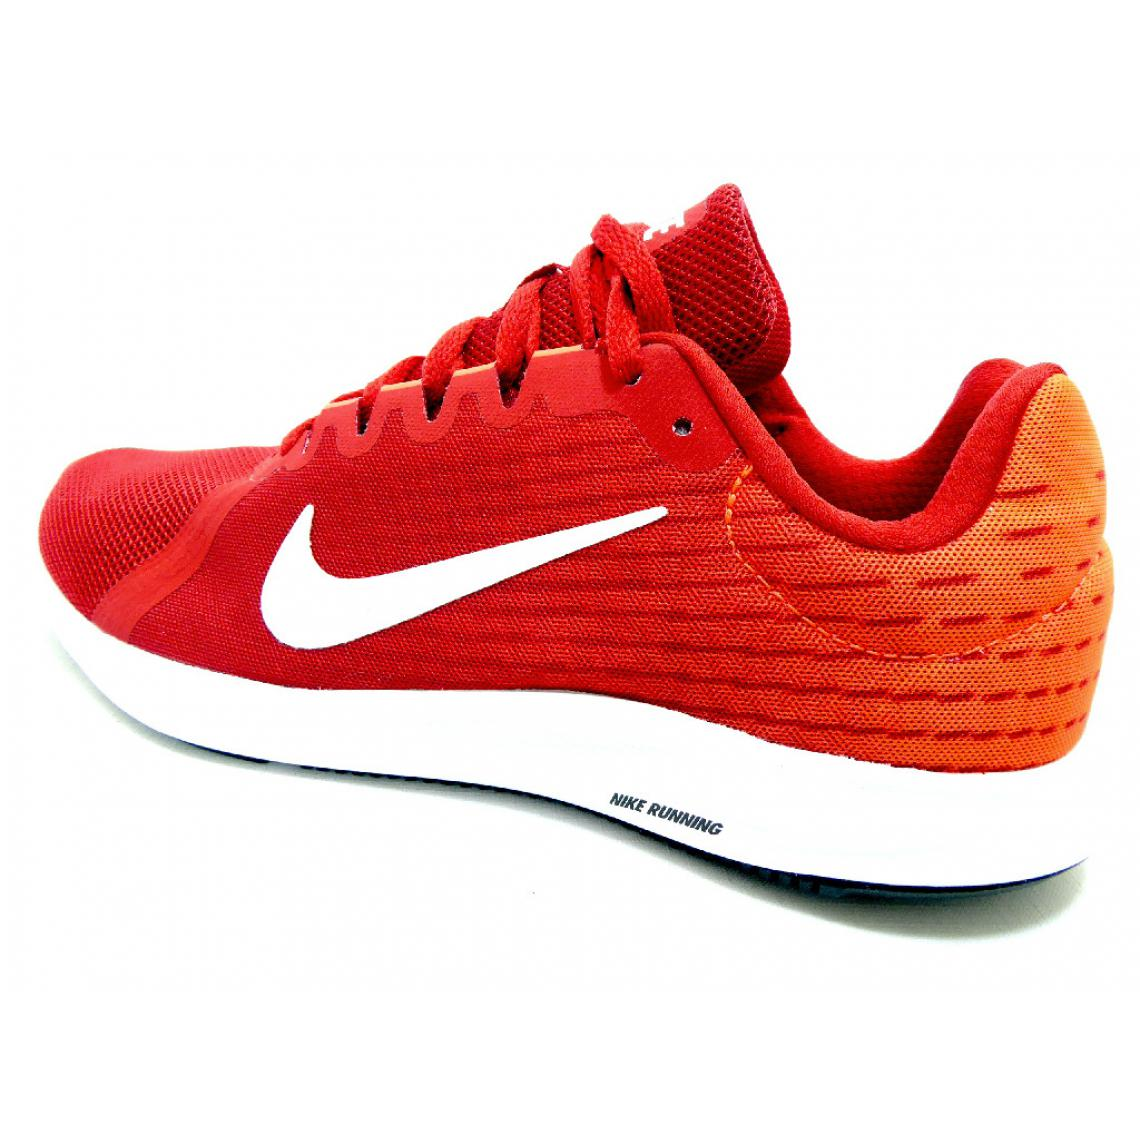 8 Chaussures Suisses De Homme3 Nike Downshifter Running 9YWEH2ID